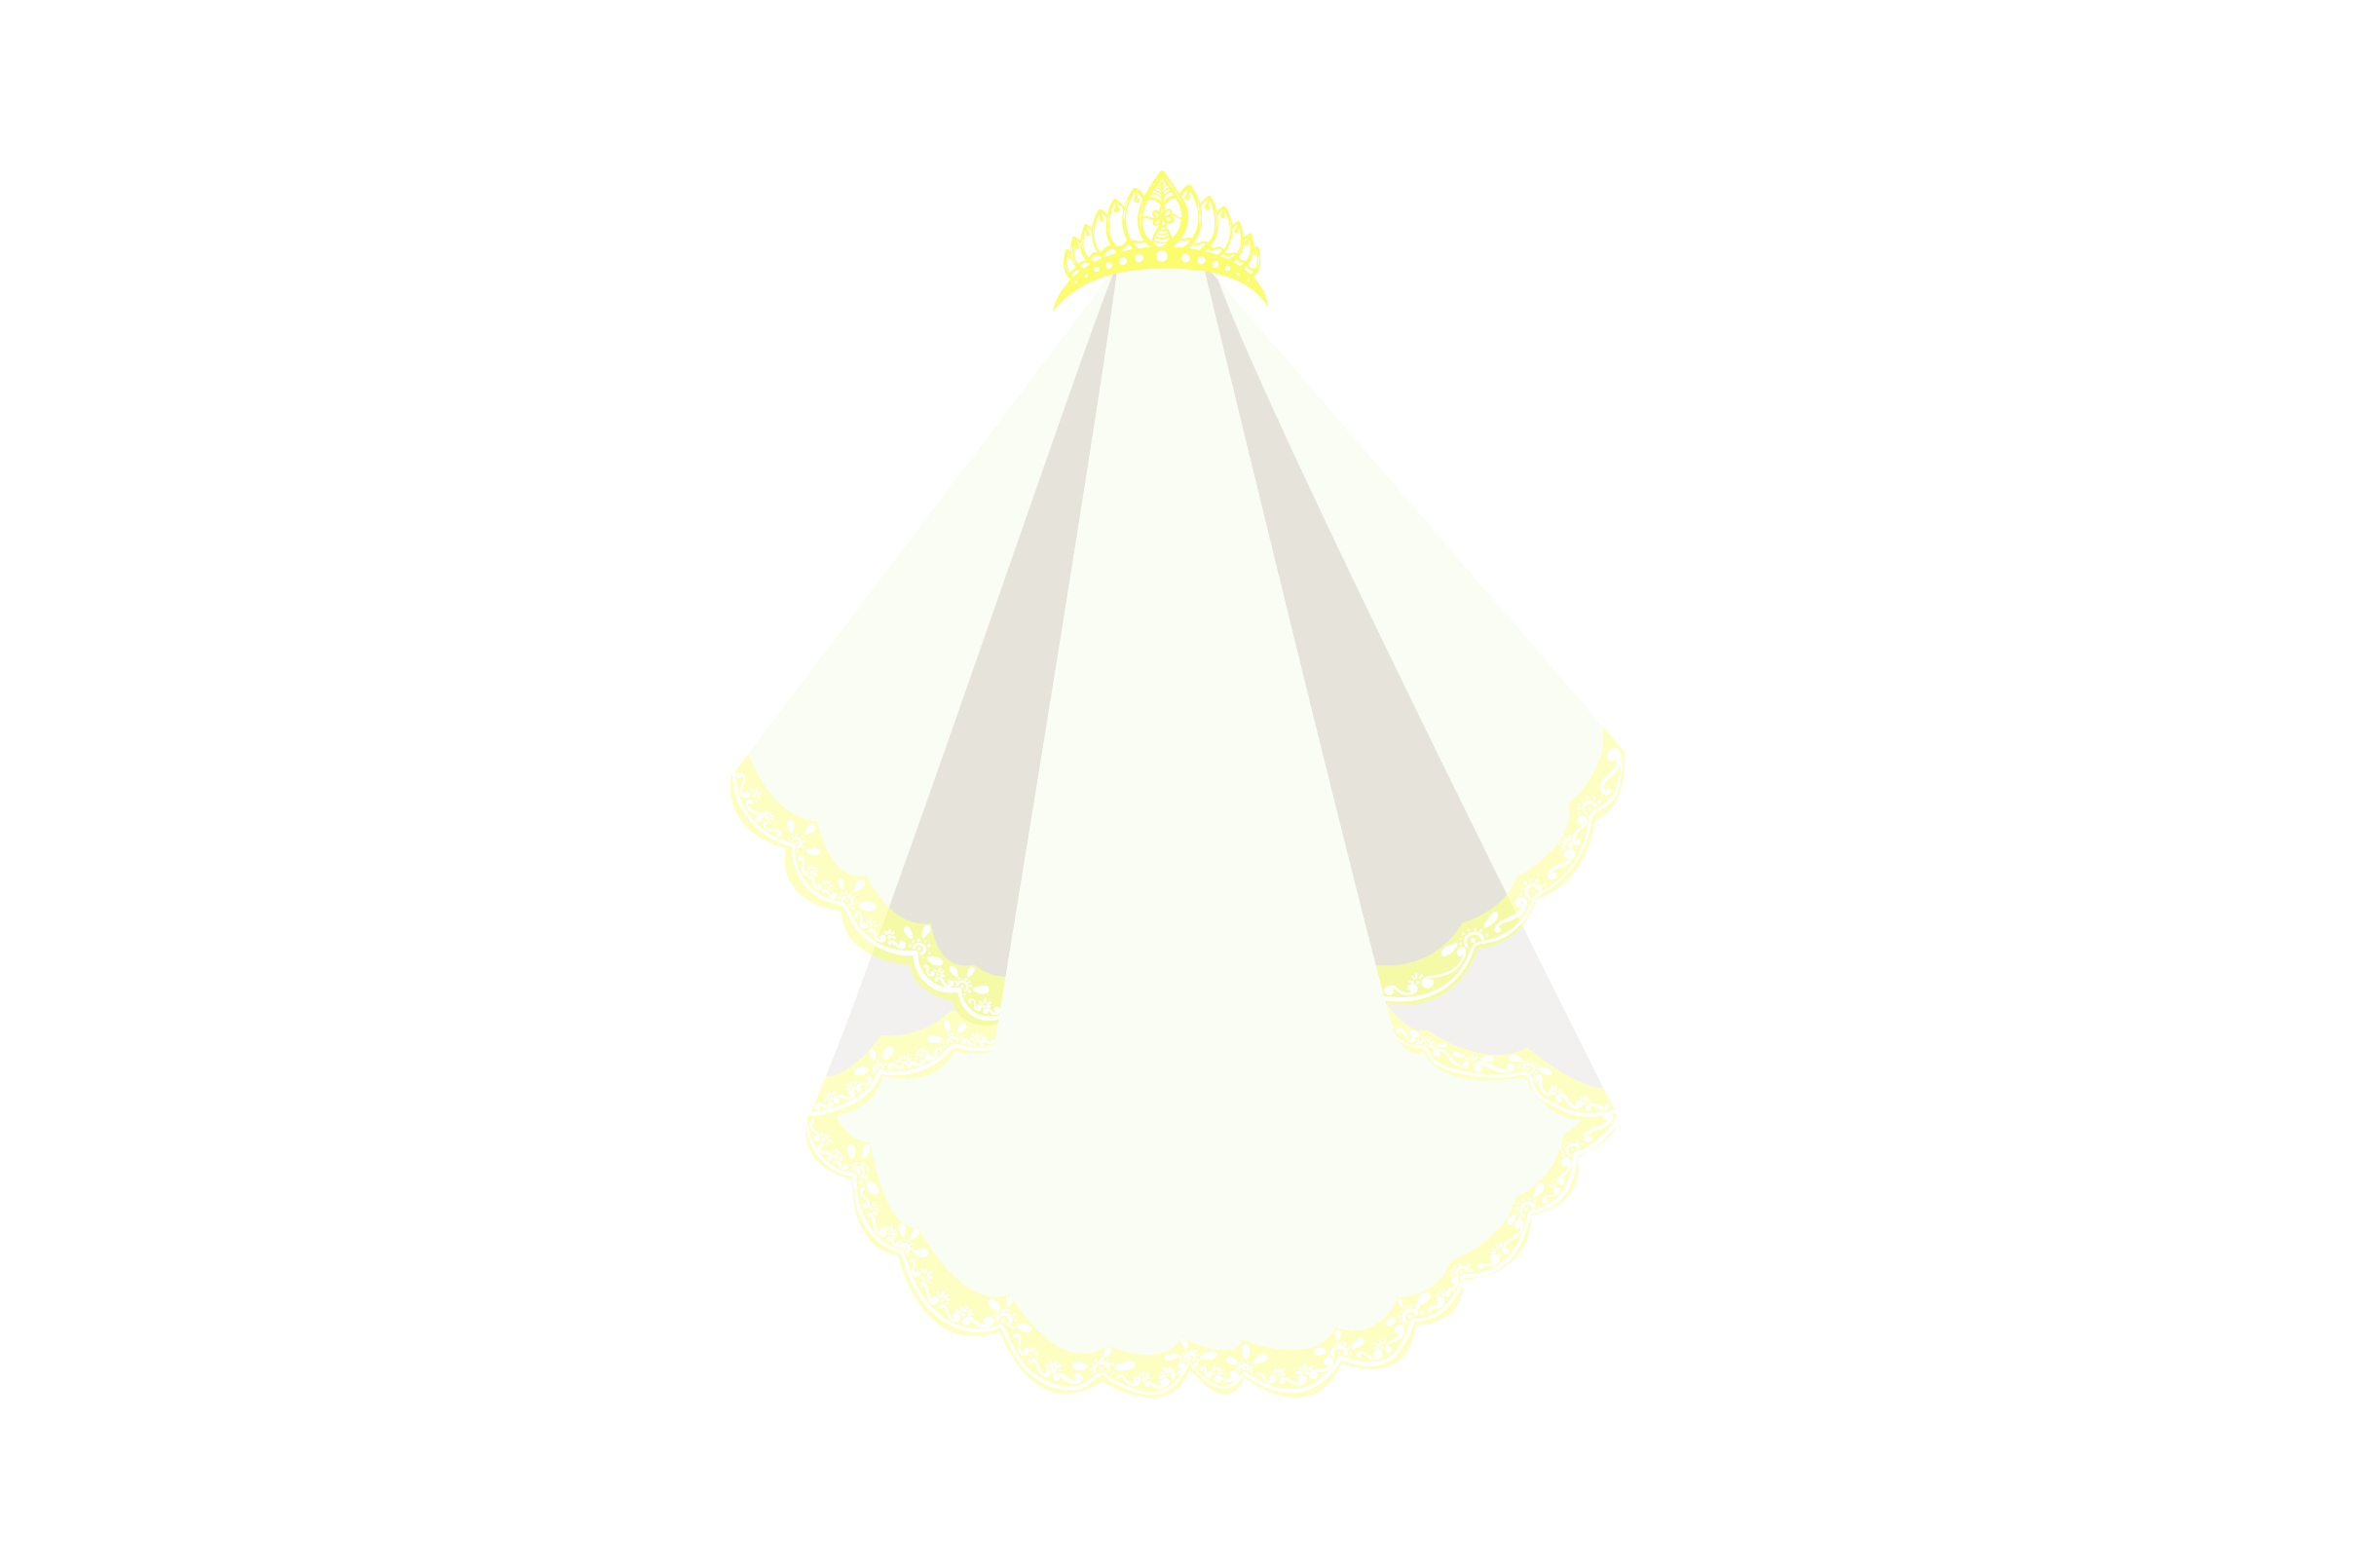 Download Free Wedding Veil With Tiara Svg Cut File By Creative Fabrica Crafts for Cricut Explore, Silhouette and other cutting machines.